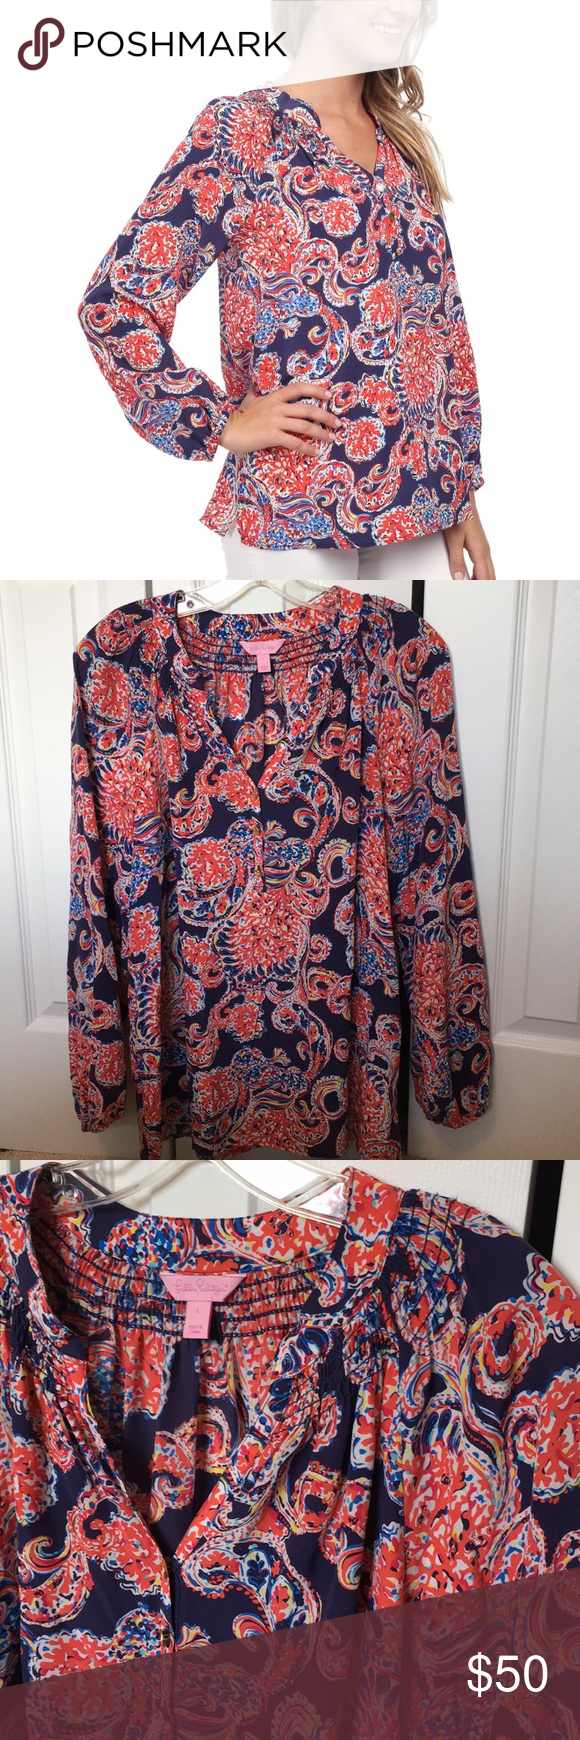 ed65535059a963 Lilly Pulitzer Elsa For The Halibut paisley top Love this with white jeans!  EUC. 100% silk. Lilly Pulitzer Tops